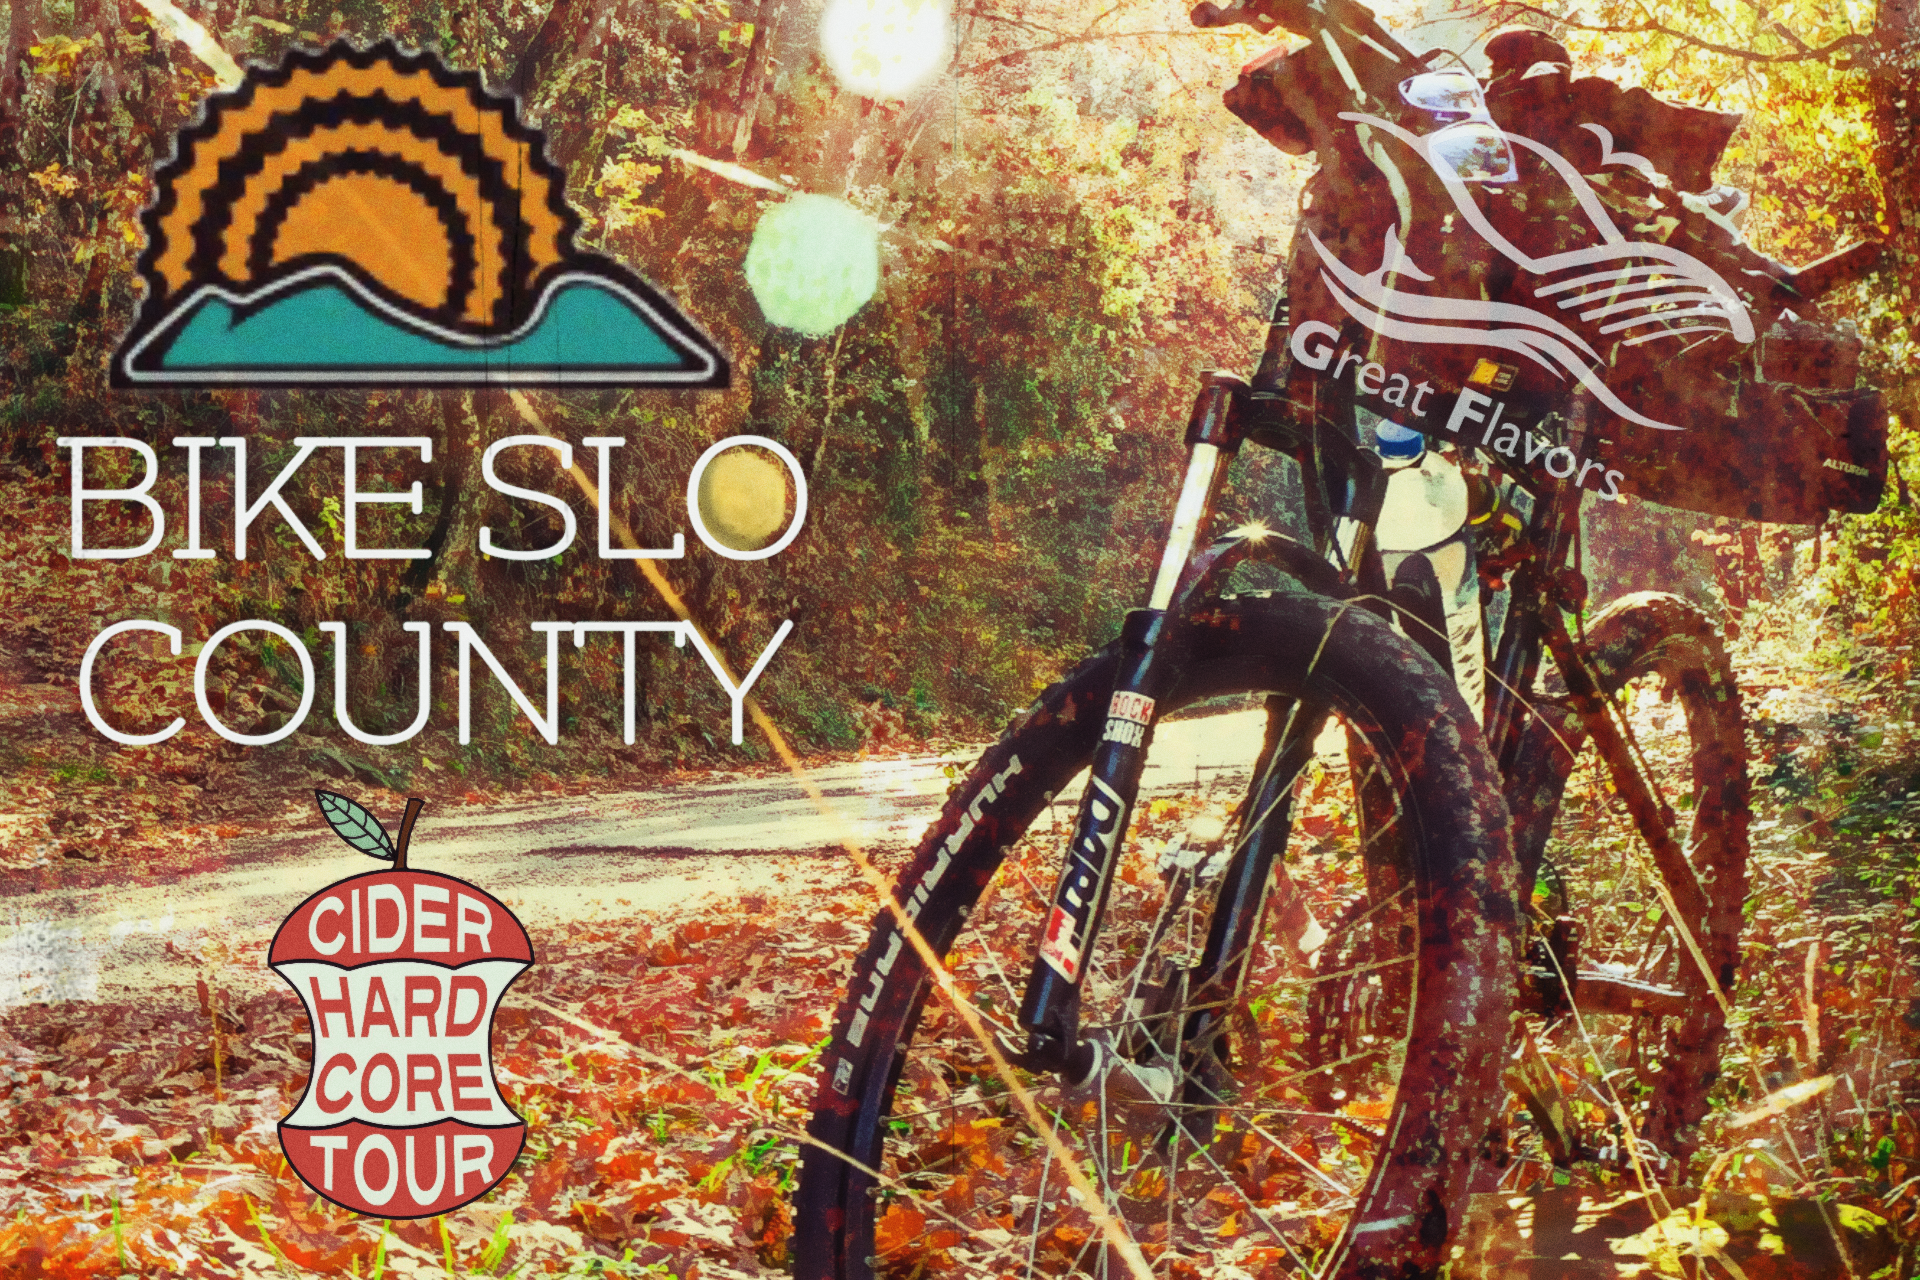 BikeSLO County feature image